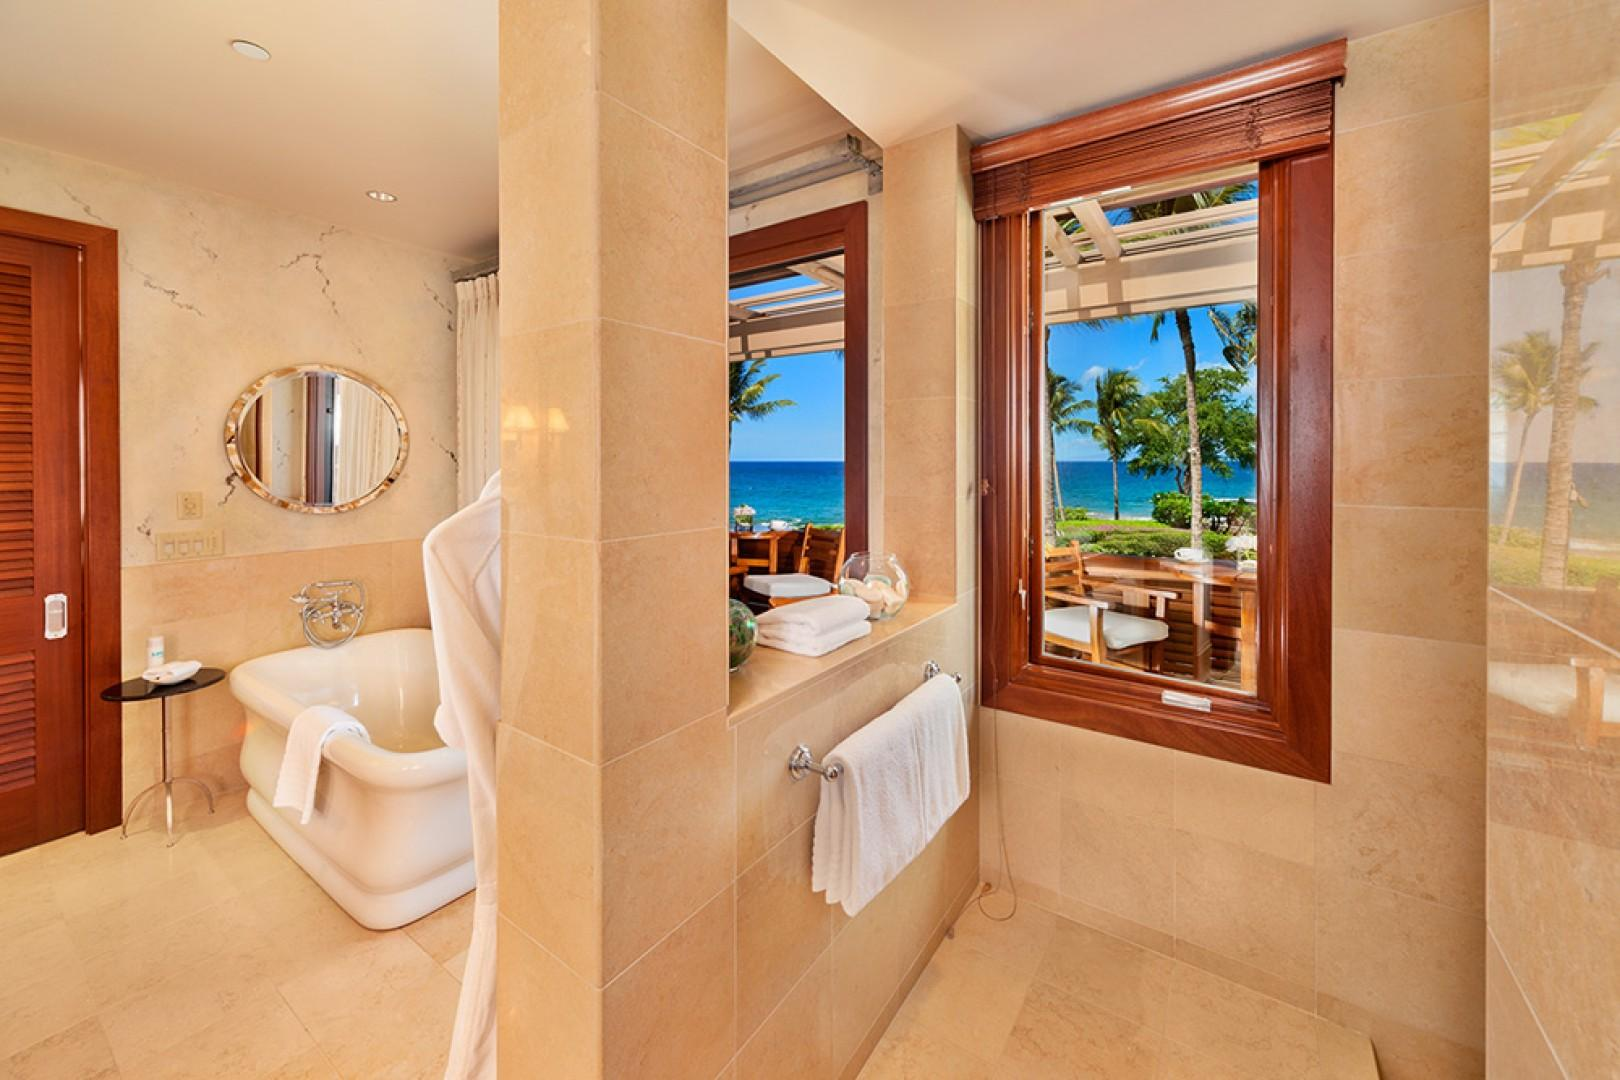 The Master Bath with Dual Vanity Sinks, Deep Soaking Tub, Separate Shower, Private WC, Walk-In Closet, Safe, Private Veranda and Ocean Front View